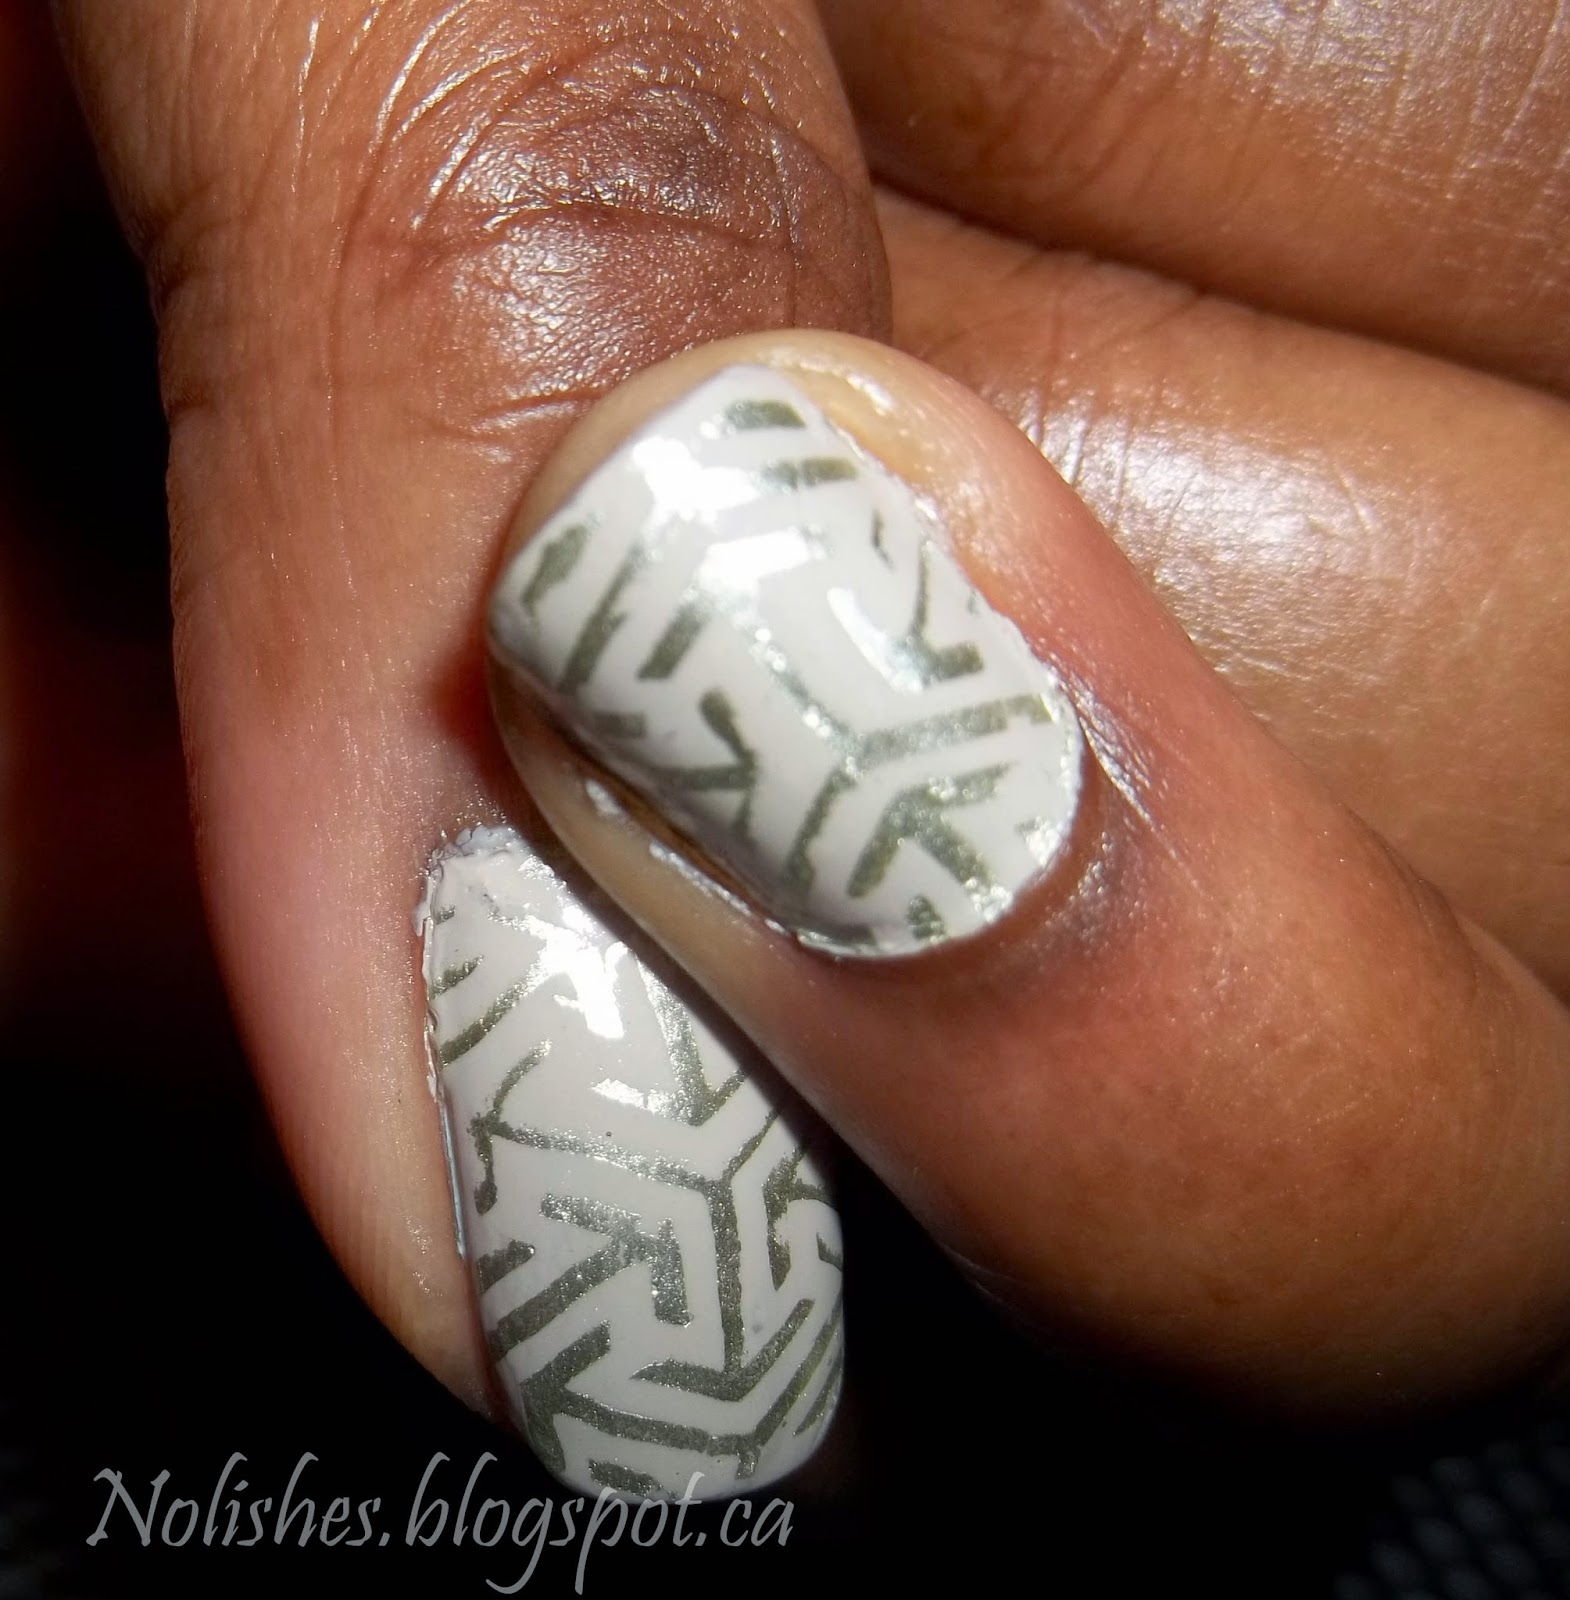 Muted Nail Stamping Manicure using Pueen plate PUEEN11. Polishes used: Essie 'Playa del Platinum', and Sally Hansen Color Foil in 'Yellow Gold'